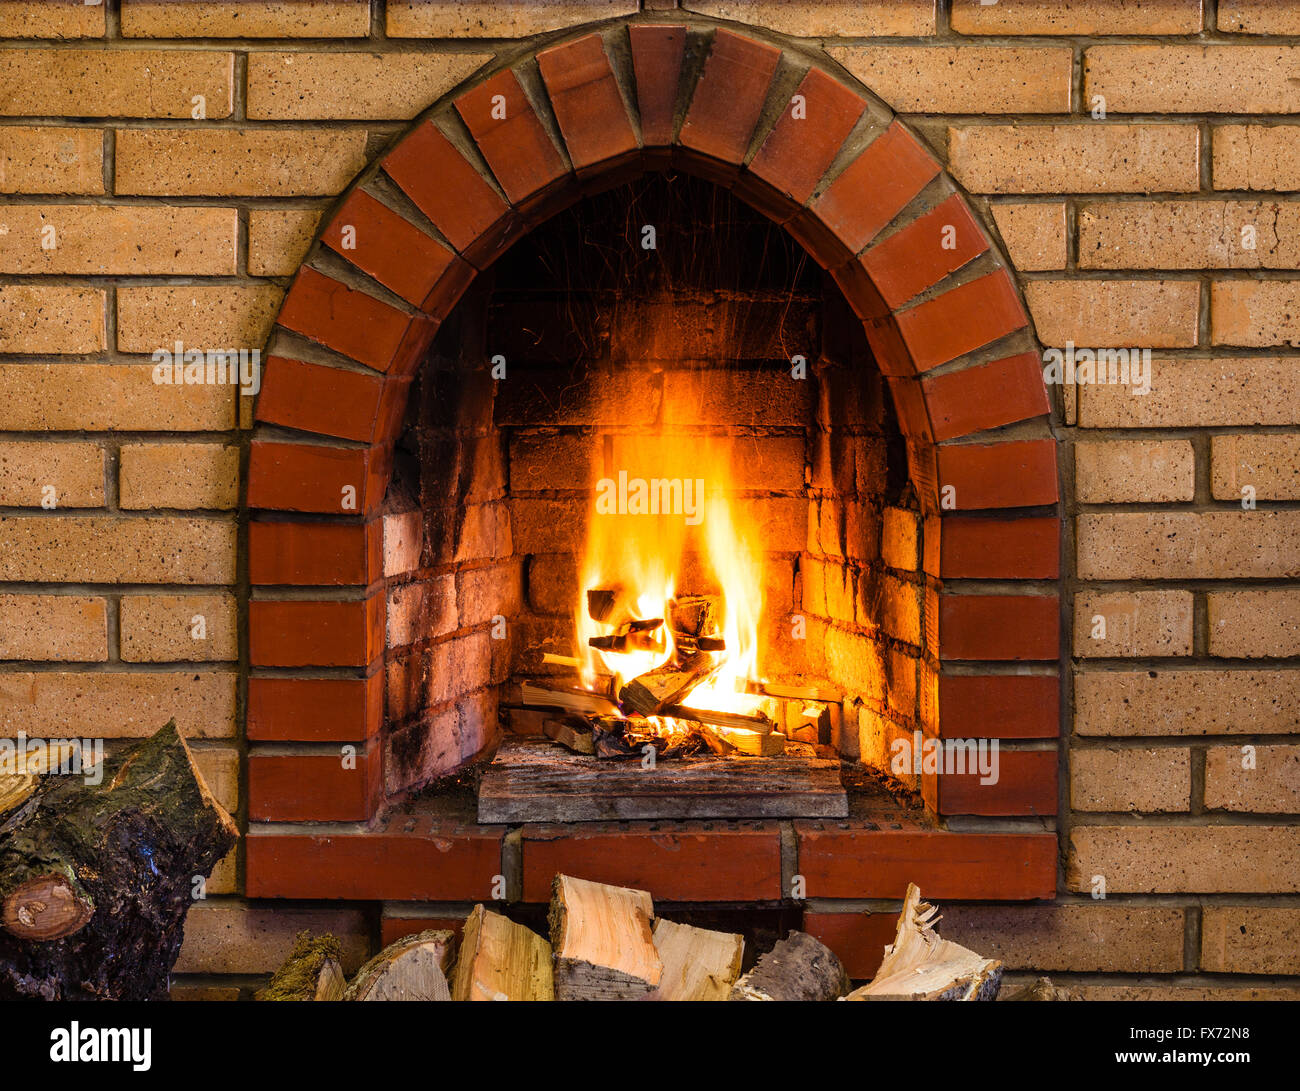 open fire in indoor brick fireplace in country cottage stock photo rh alamy com Outdoor Fire Brick for Fireplace Fire Brick for Fireplaces Firebox